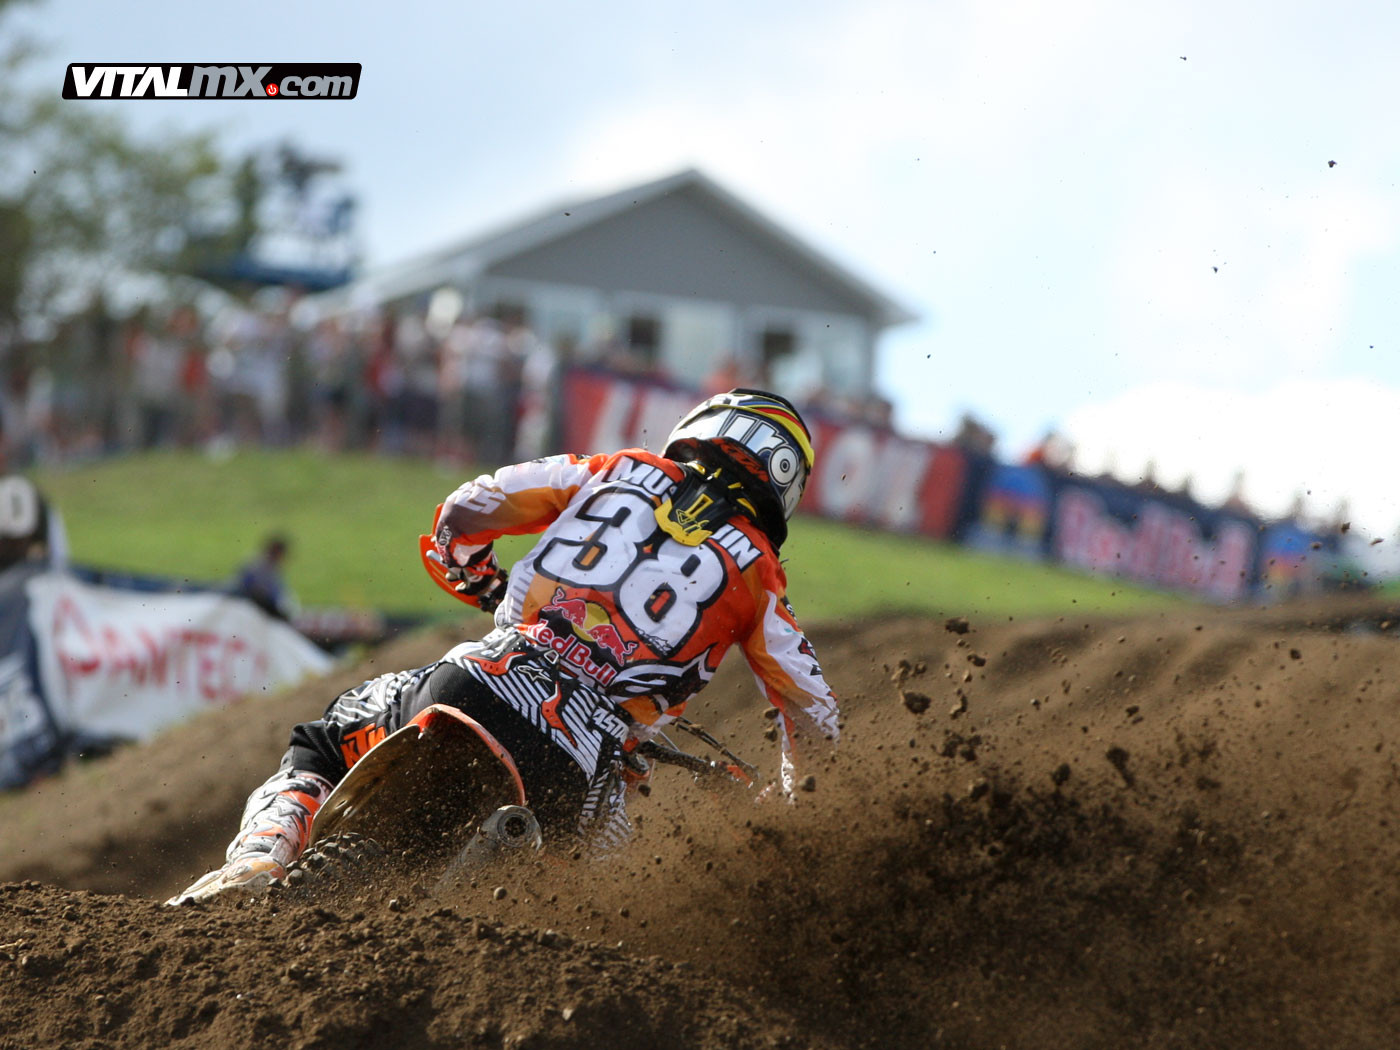 Marvin Musquin Wallpaper - Pic o' The Day: Marvin Musquin - Motocross Pictures - Vital MX